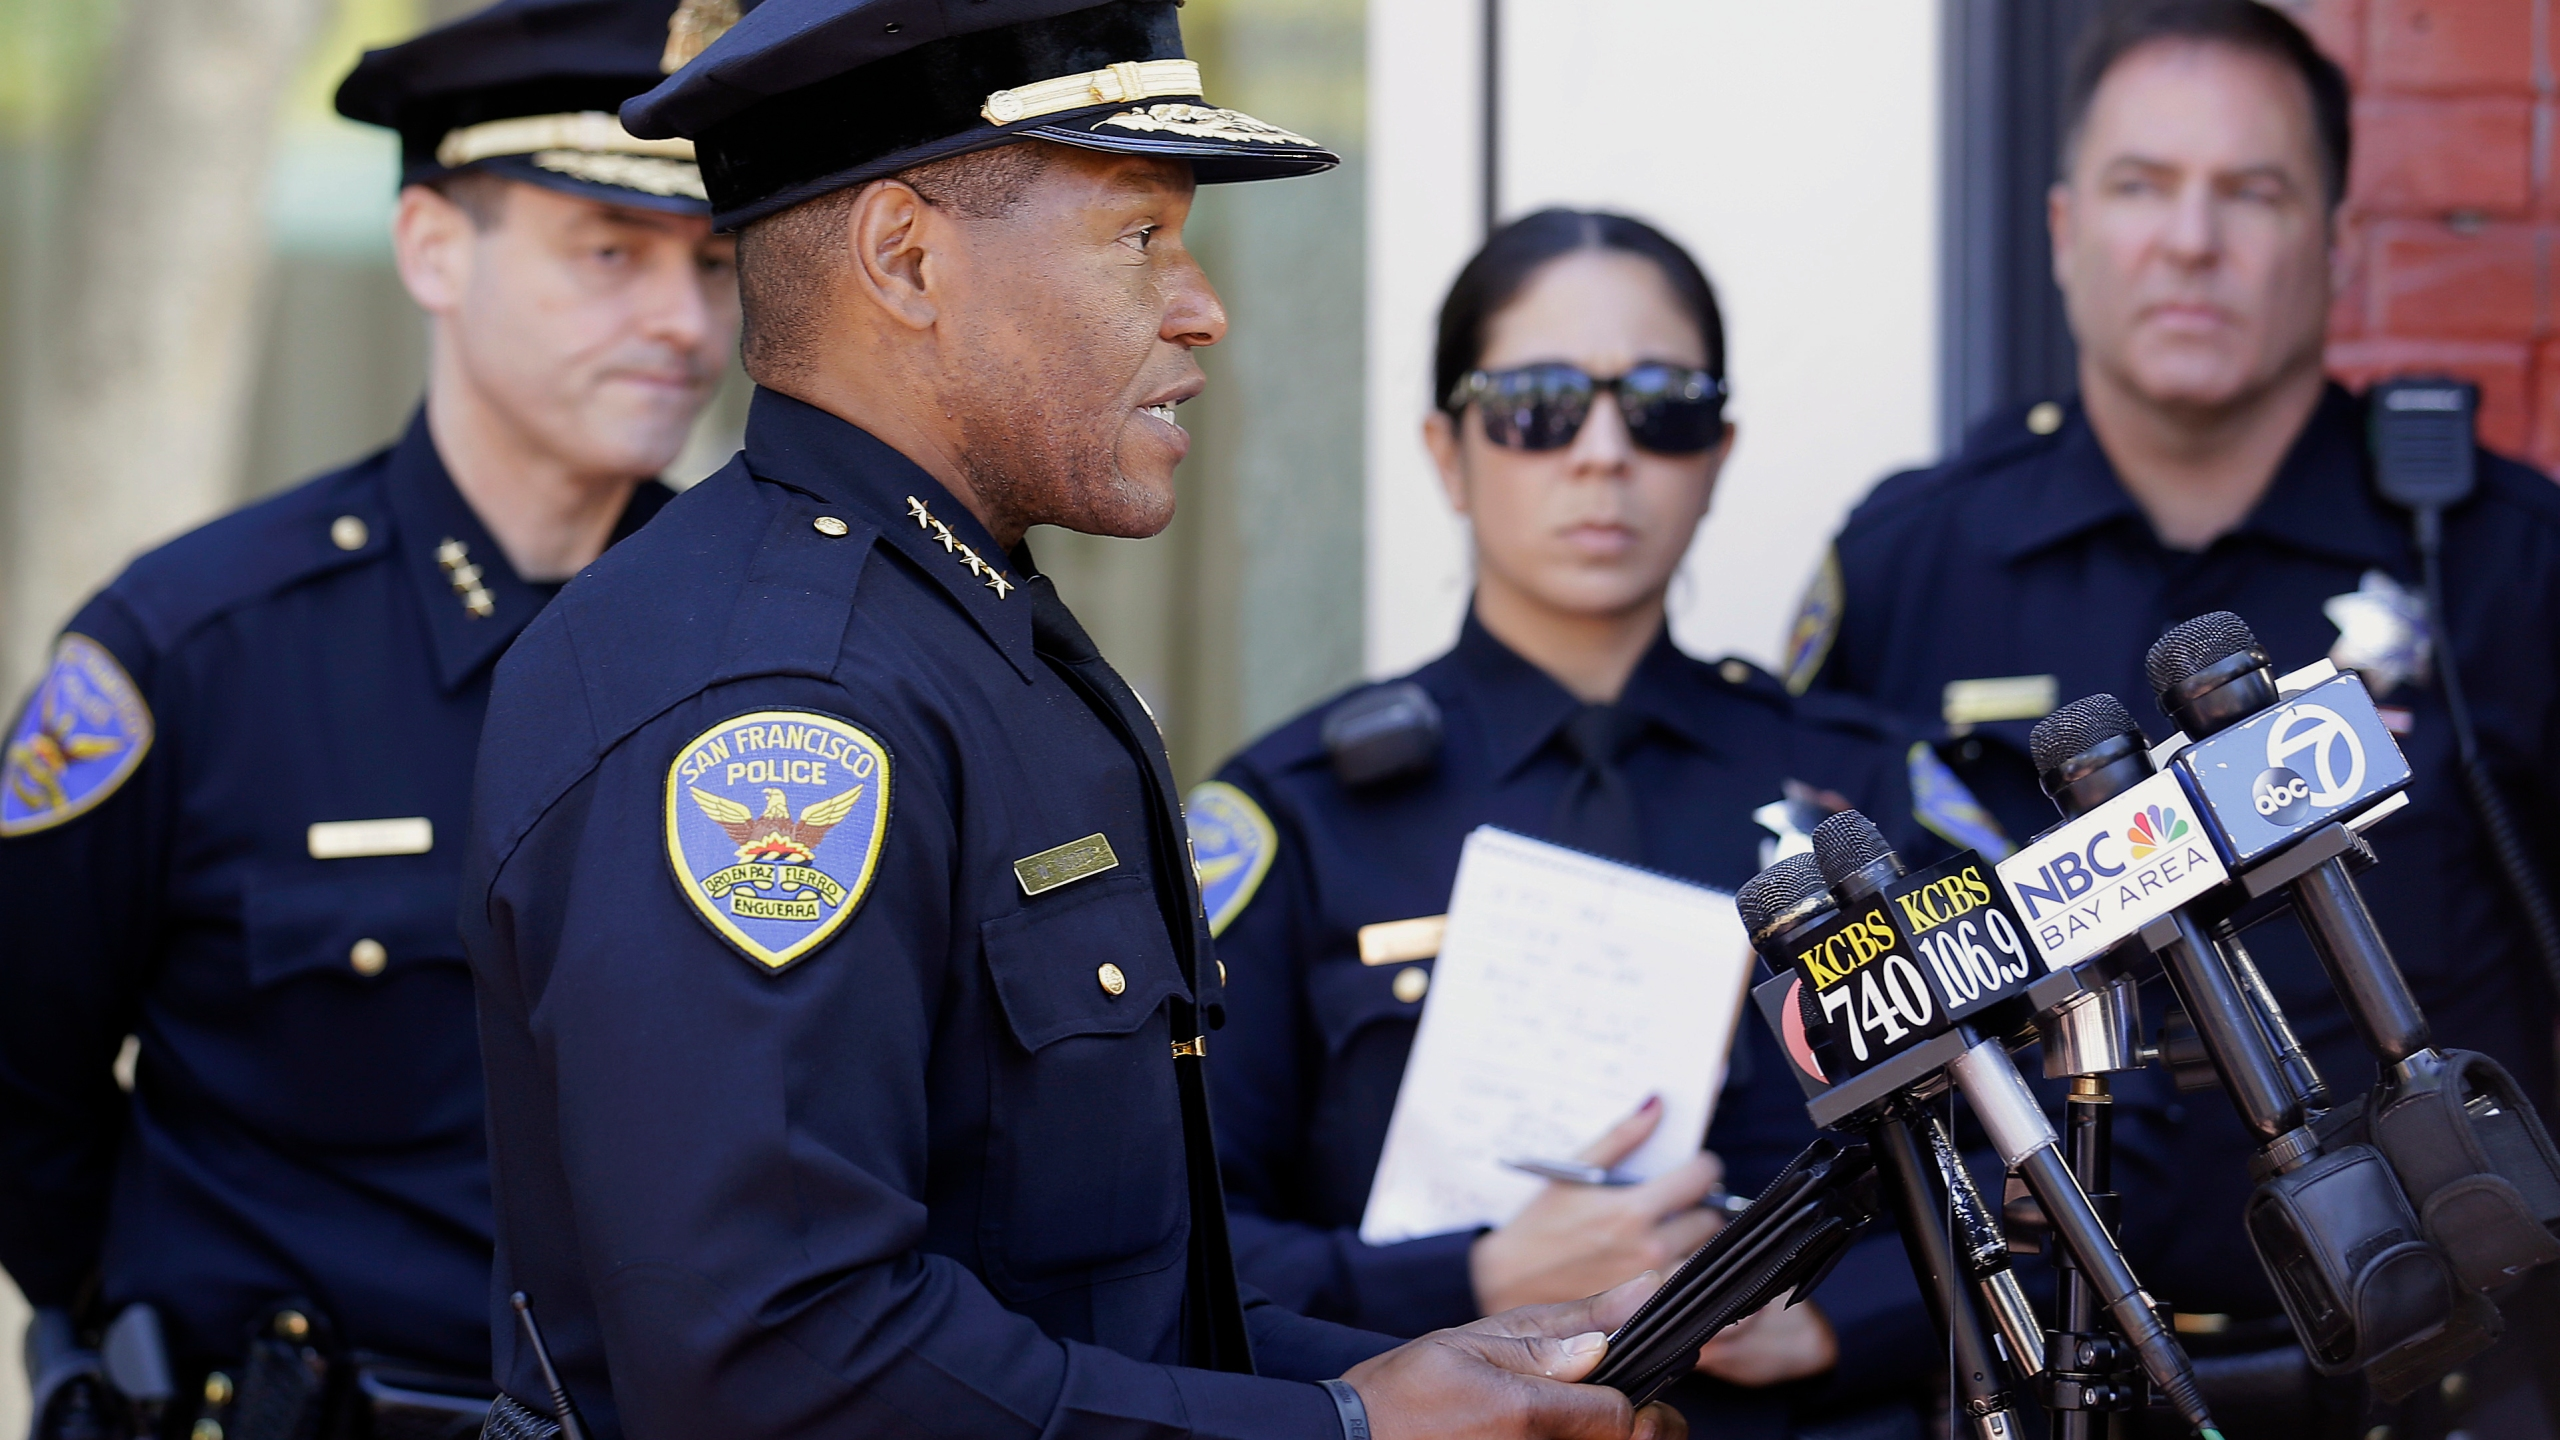 In this May 3, 2017, file photo, San Francisco Police Chief Bill Scott speaks to reporters in San Francisco. Scott apologized Thursday, May 13, 2021, for a police shooting last week that injured a burglary suspect. The man, was shot in the wrist by a plainclothes officer as he was being arrested. (AP Photo/Jeff Chiu, File)